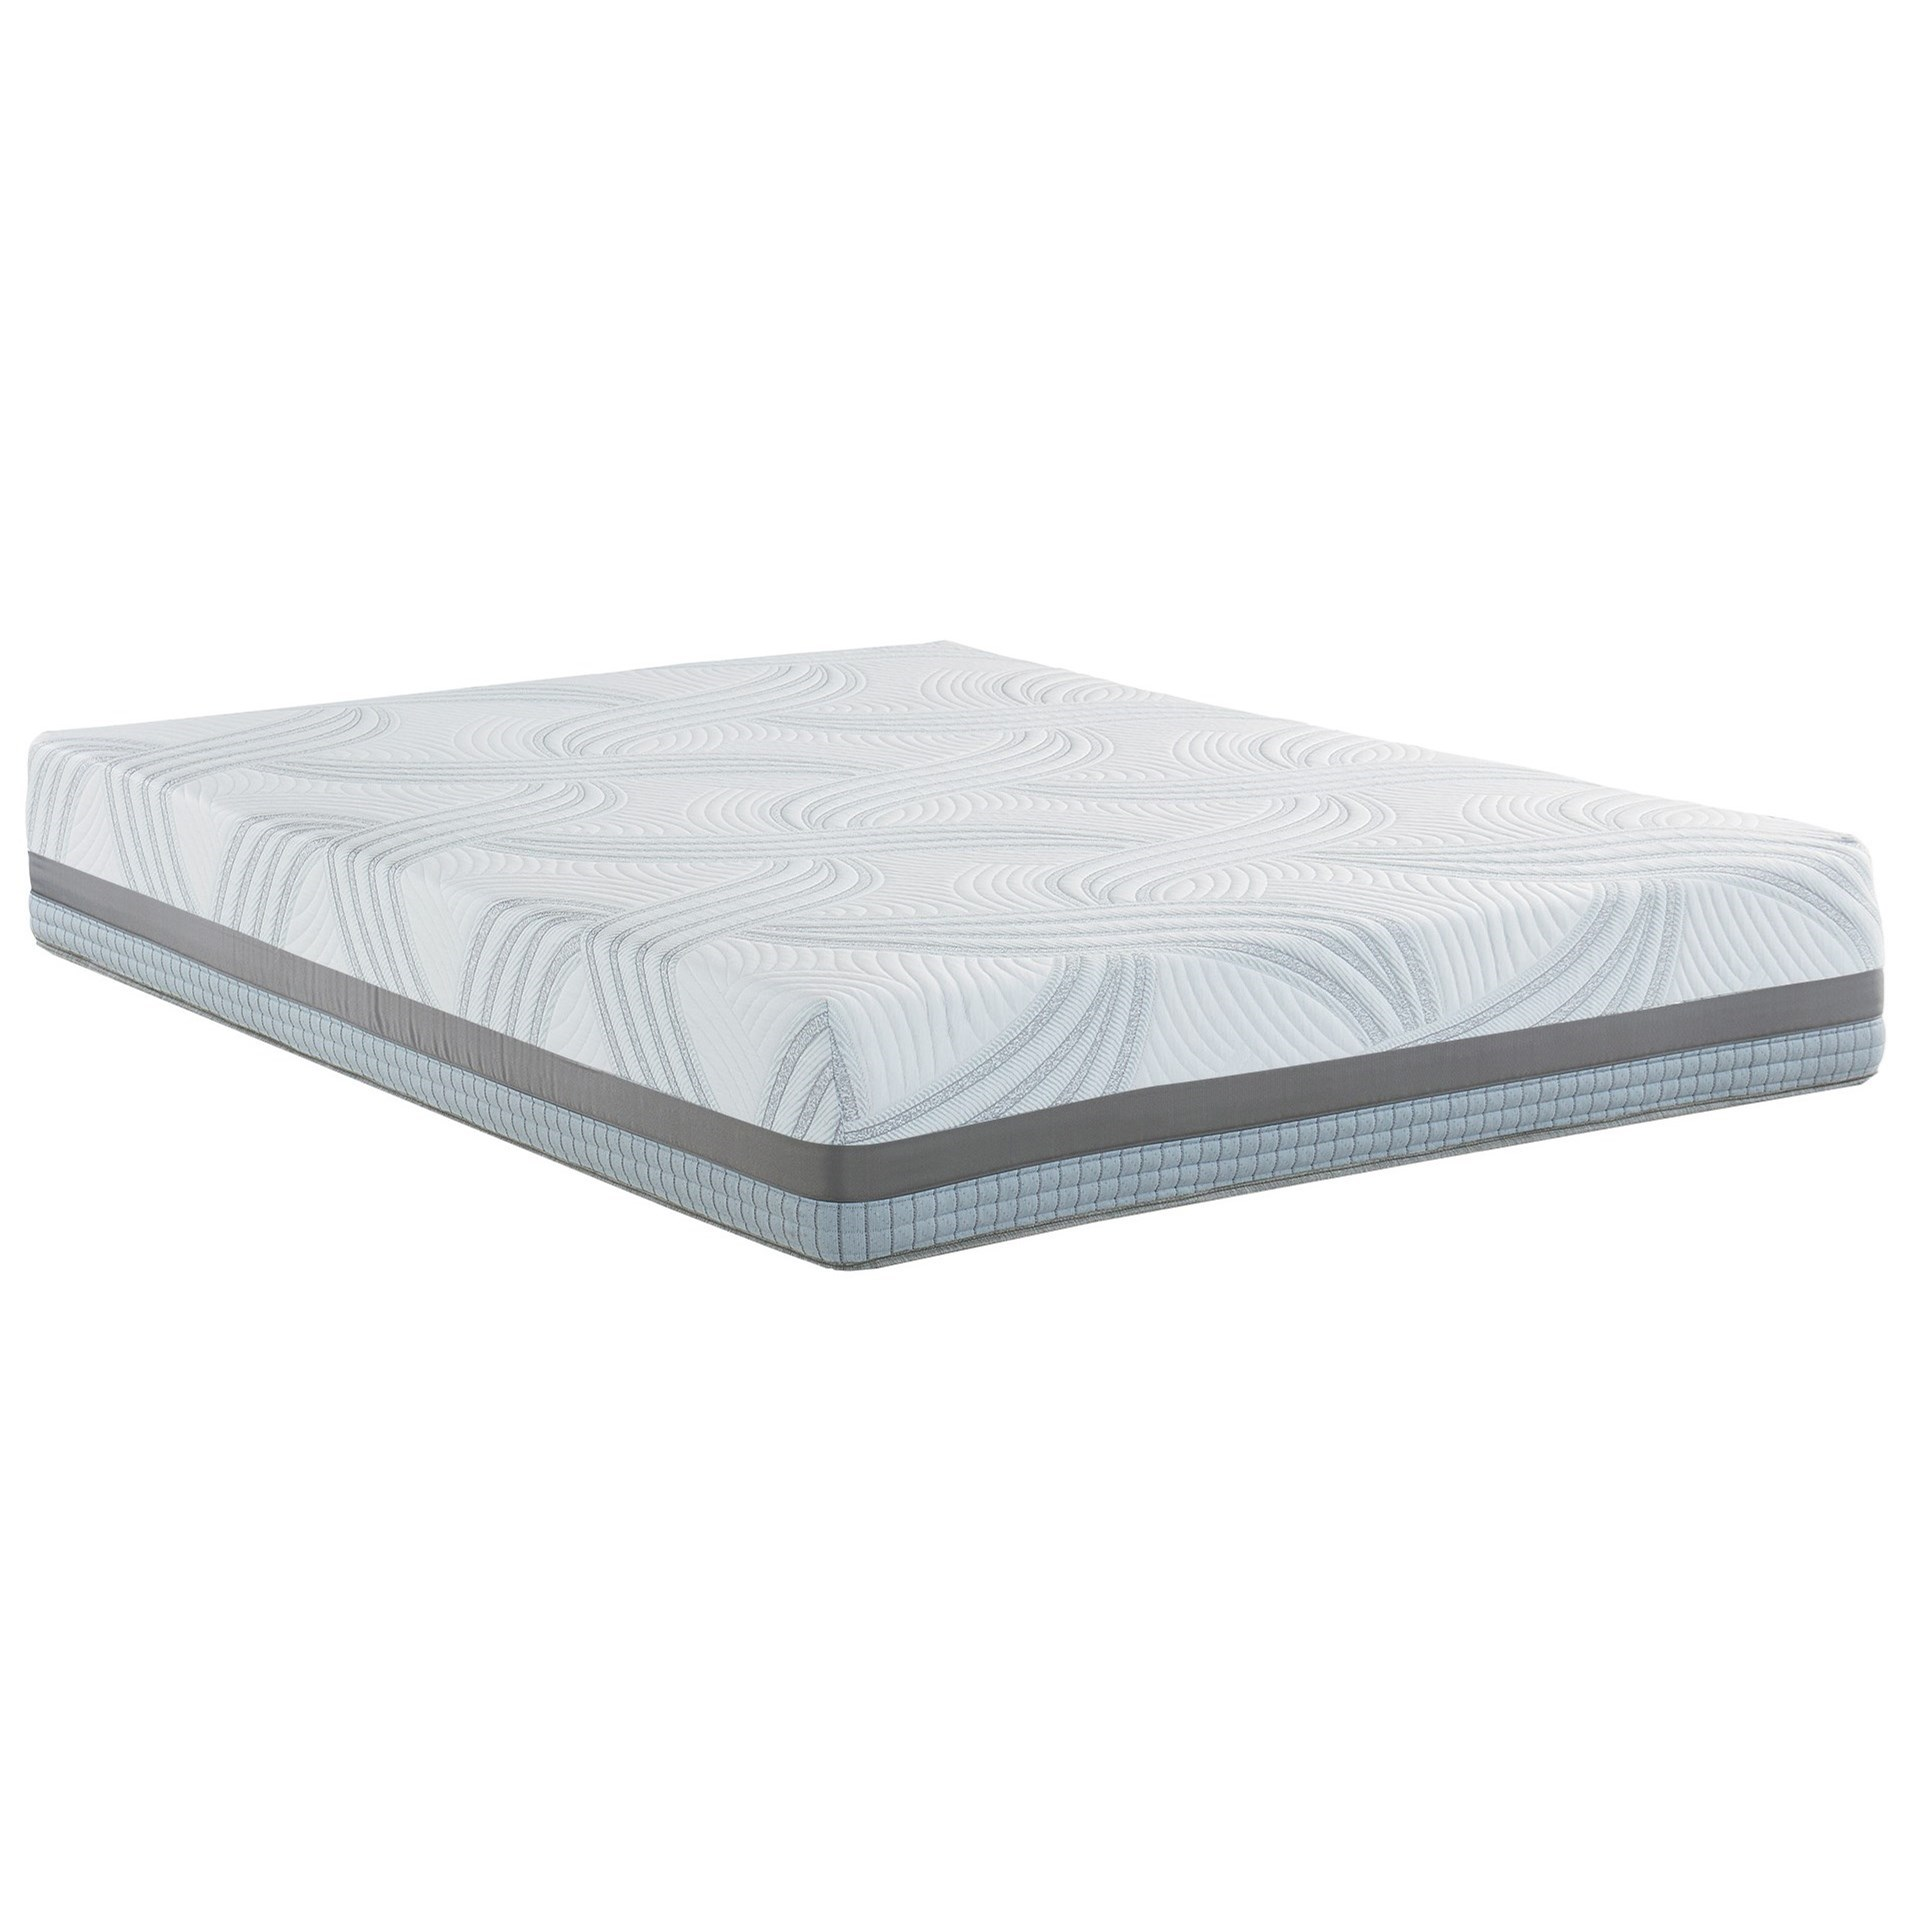 iretreat hybrid bredabeds mattress min mattresses hyb